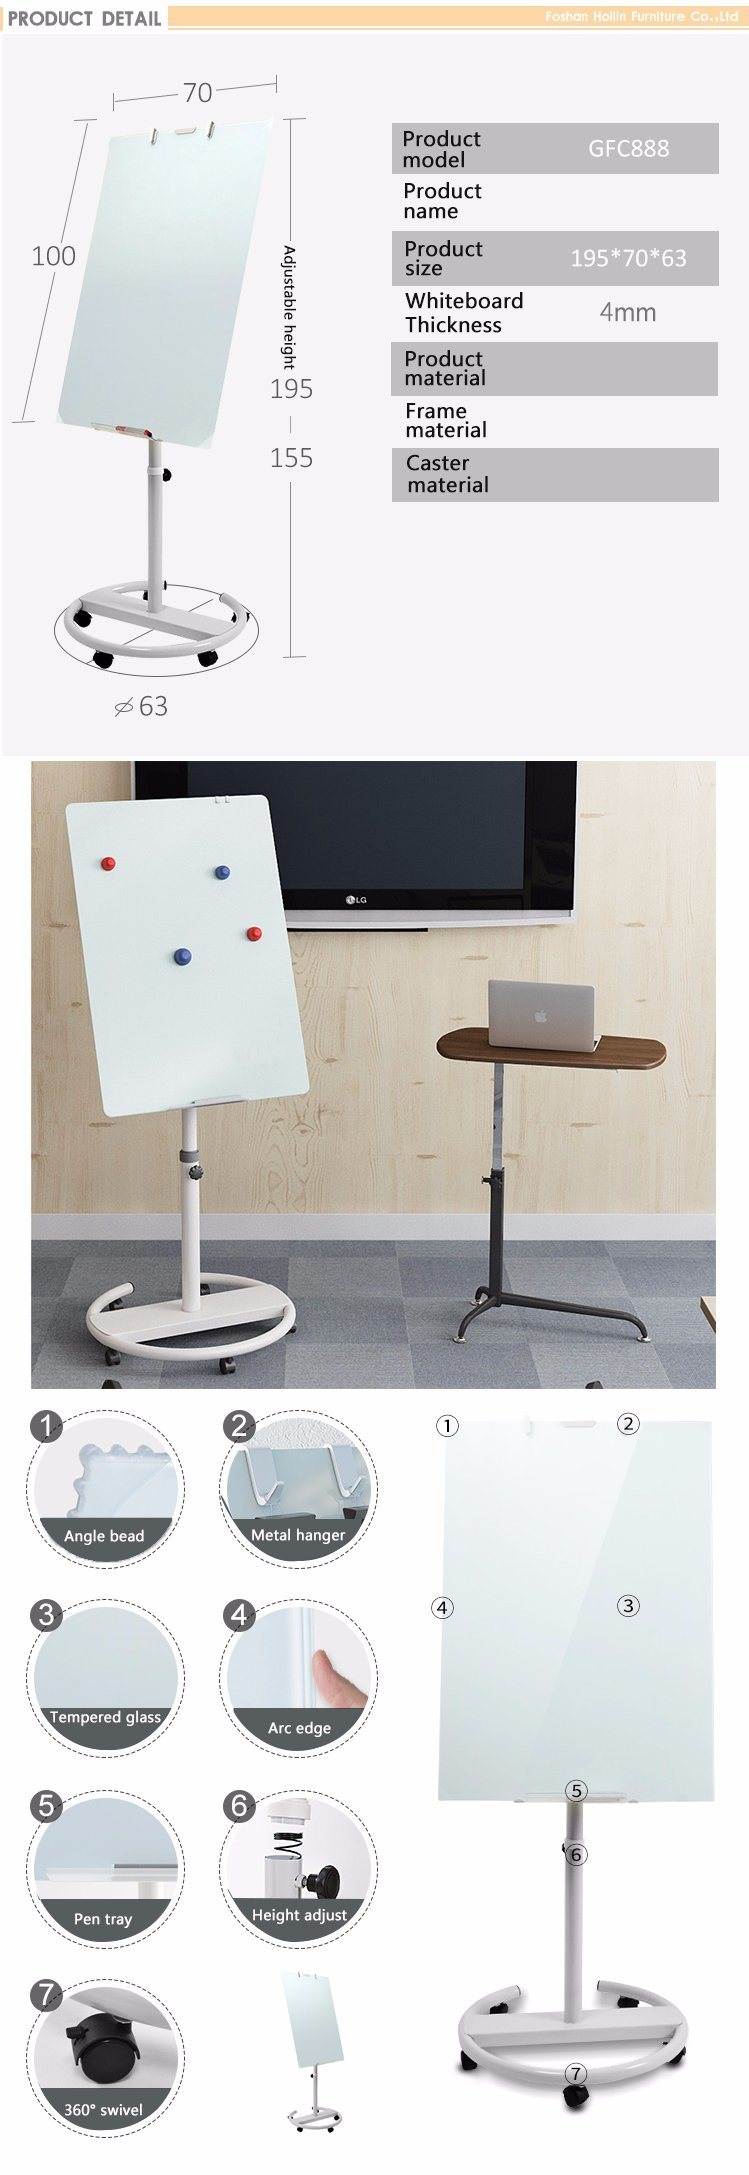 whiteboard for home office. Accessory Tray To Hold Dry-erase Markers Included Whiteboard For Home Office